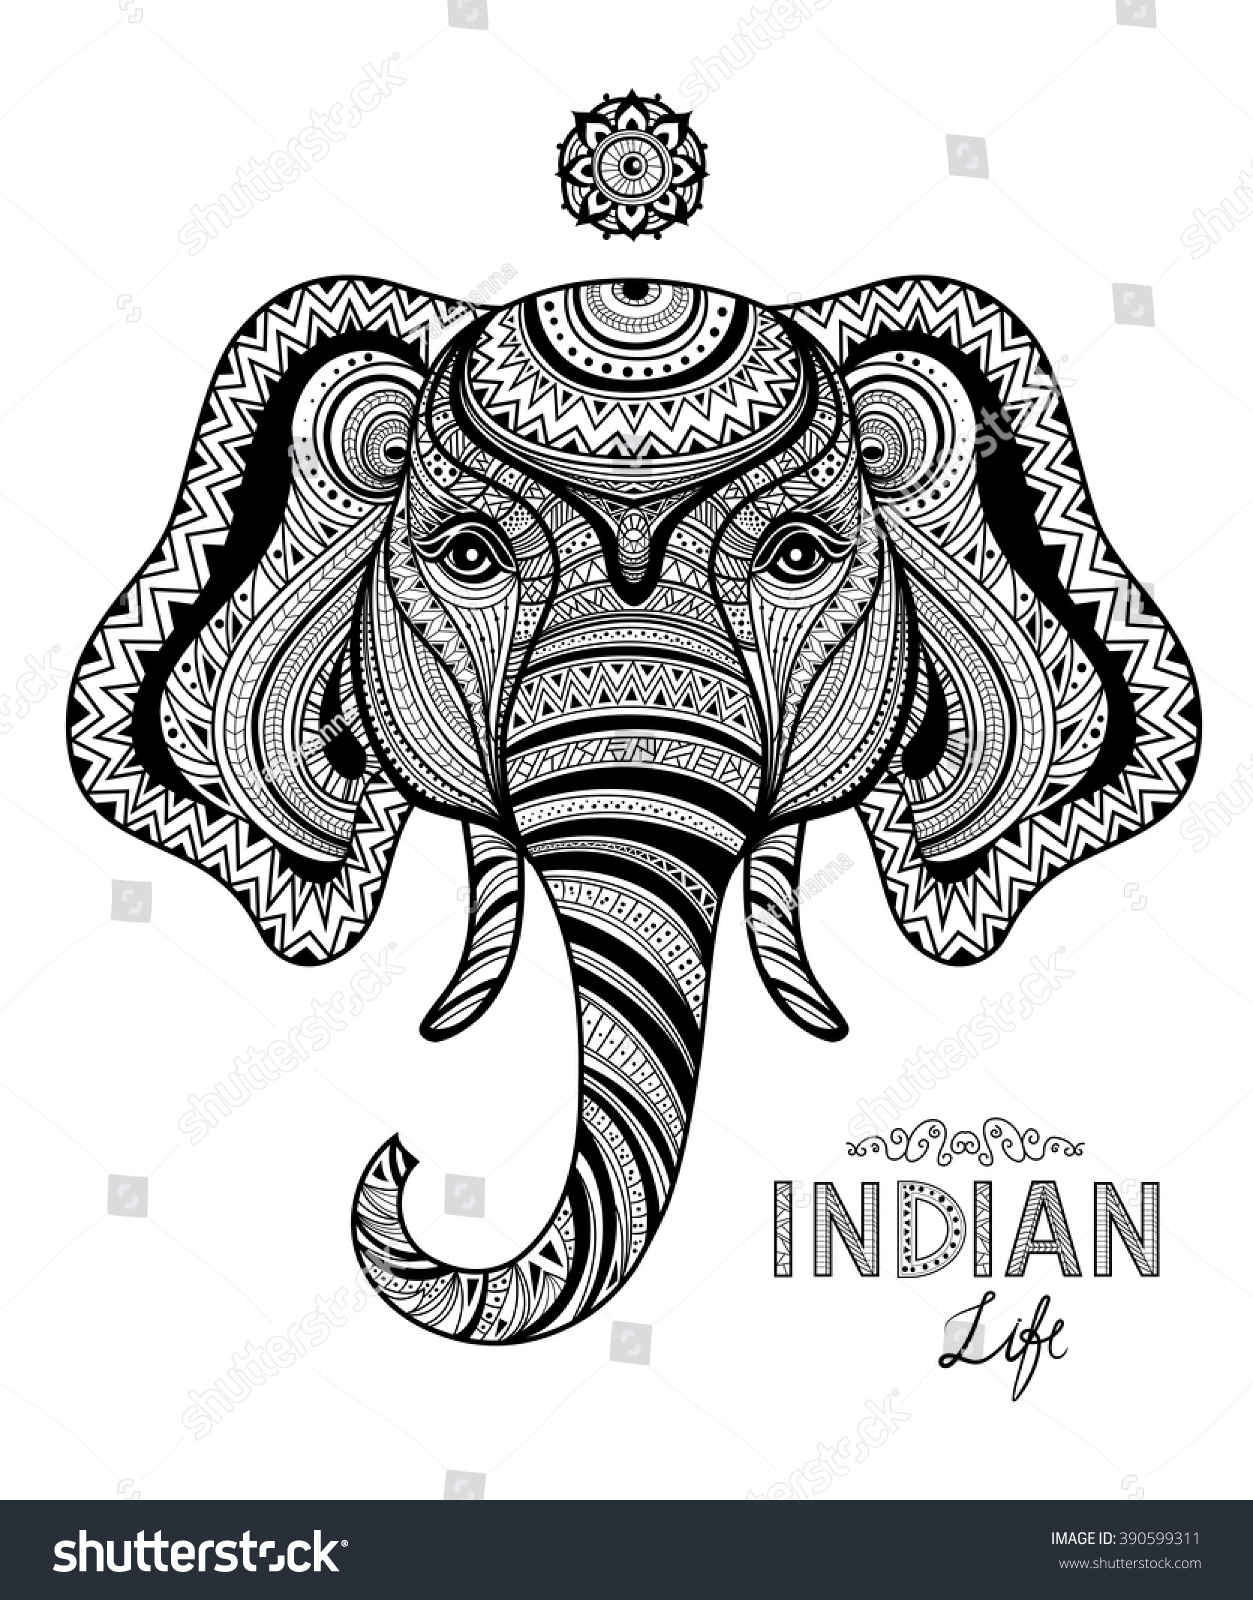 abstract indian life symbol elephant zentangle stock vector